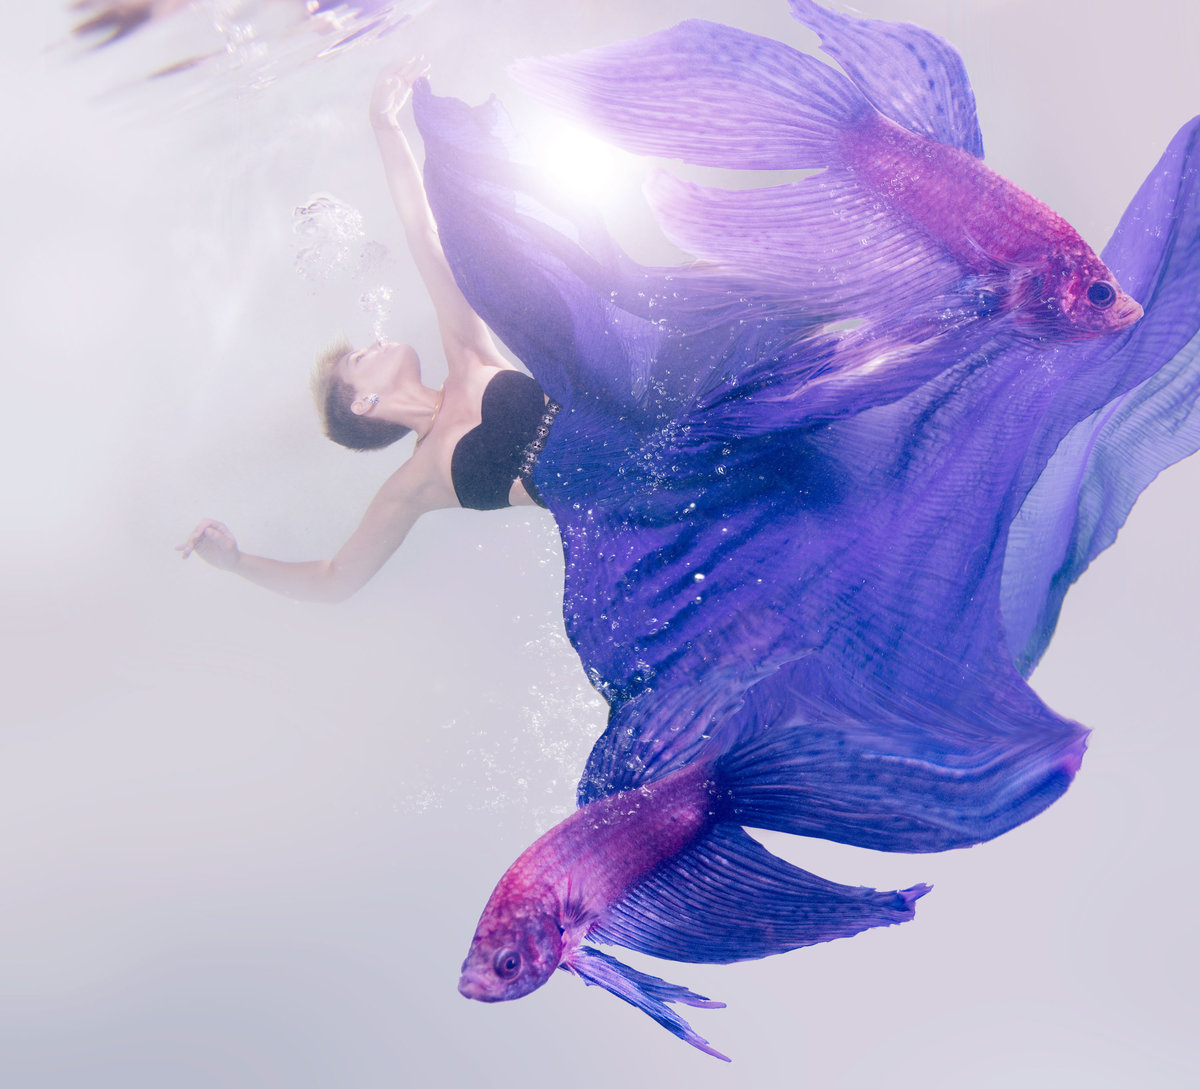 underwater fashion photographer jenn bischof underwater photography